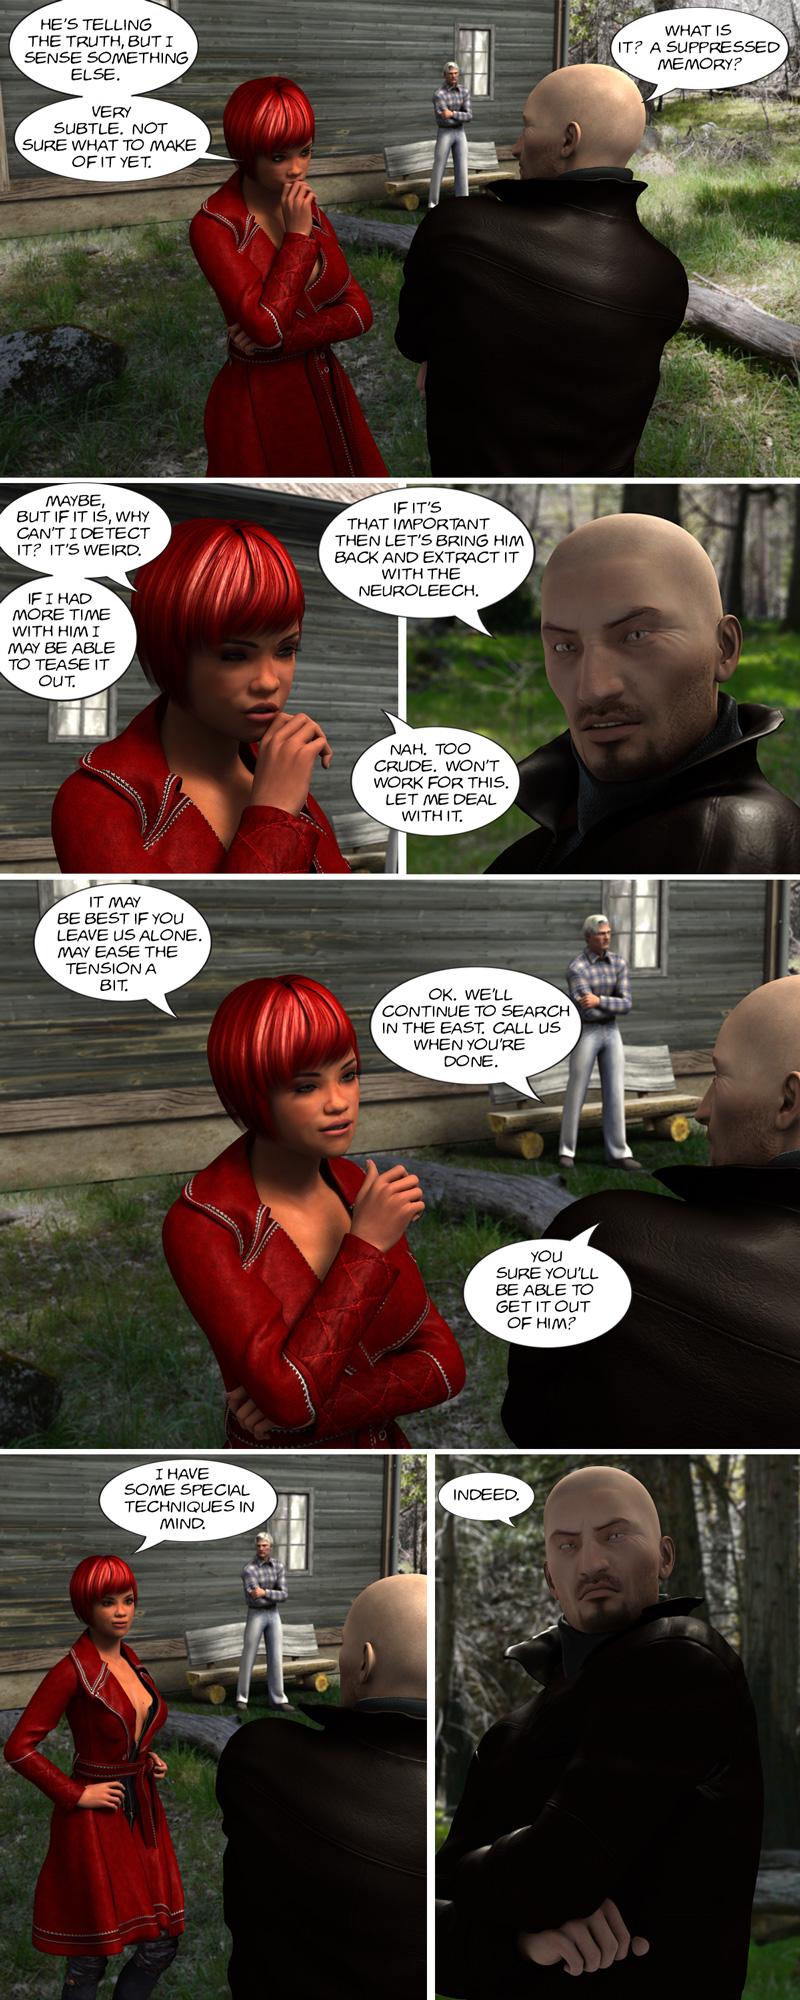 Chapter 11, page 23